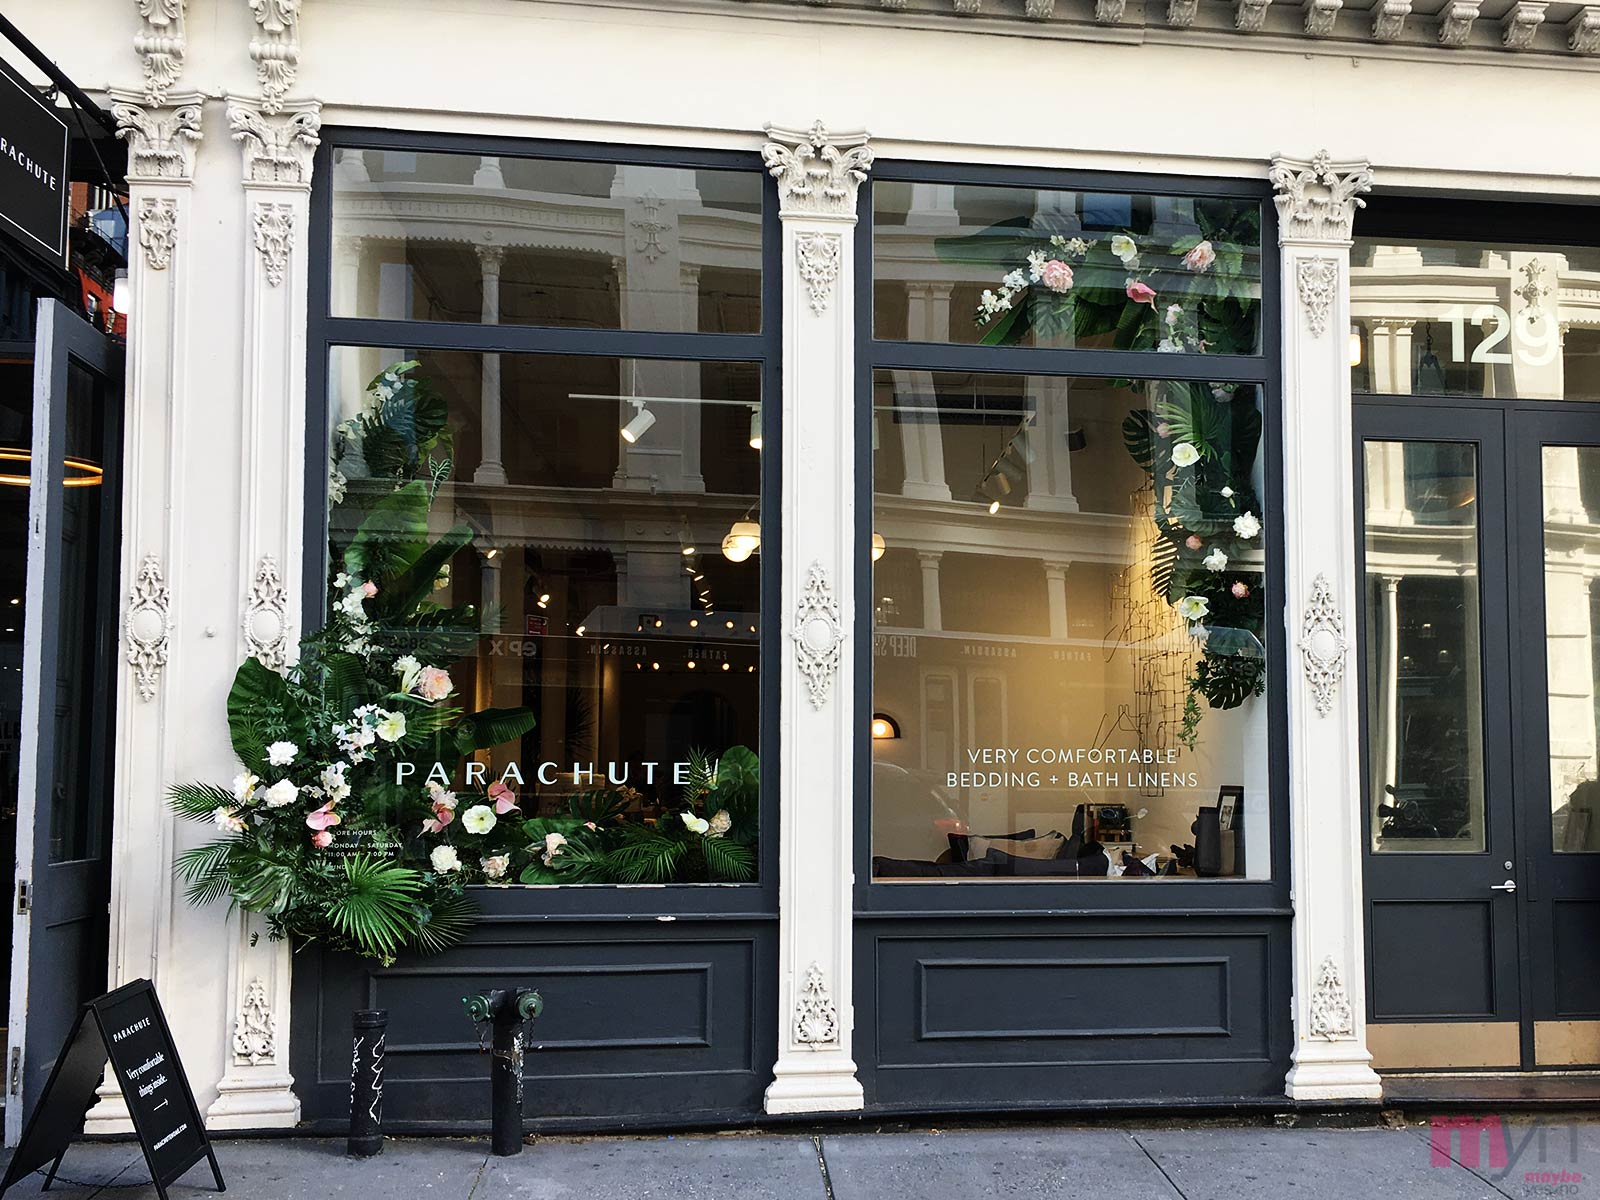 Parachute bedding NYC store is open in Soho.  Located on the corner of Grand and Crosby Street